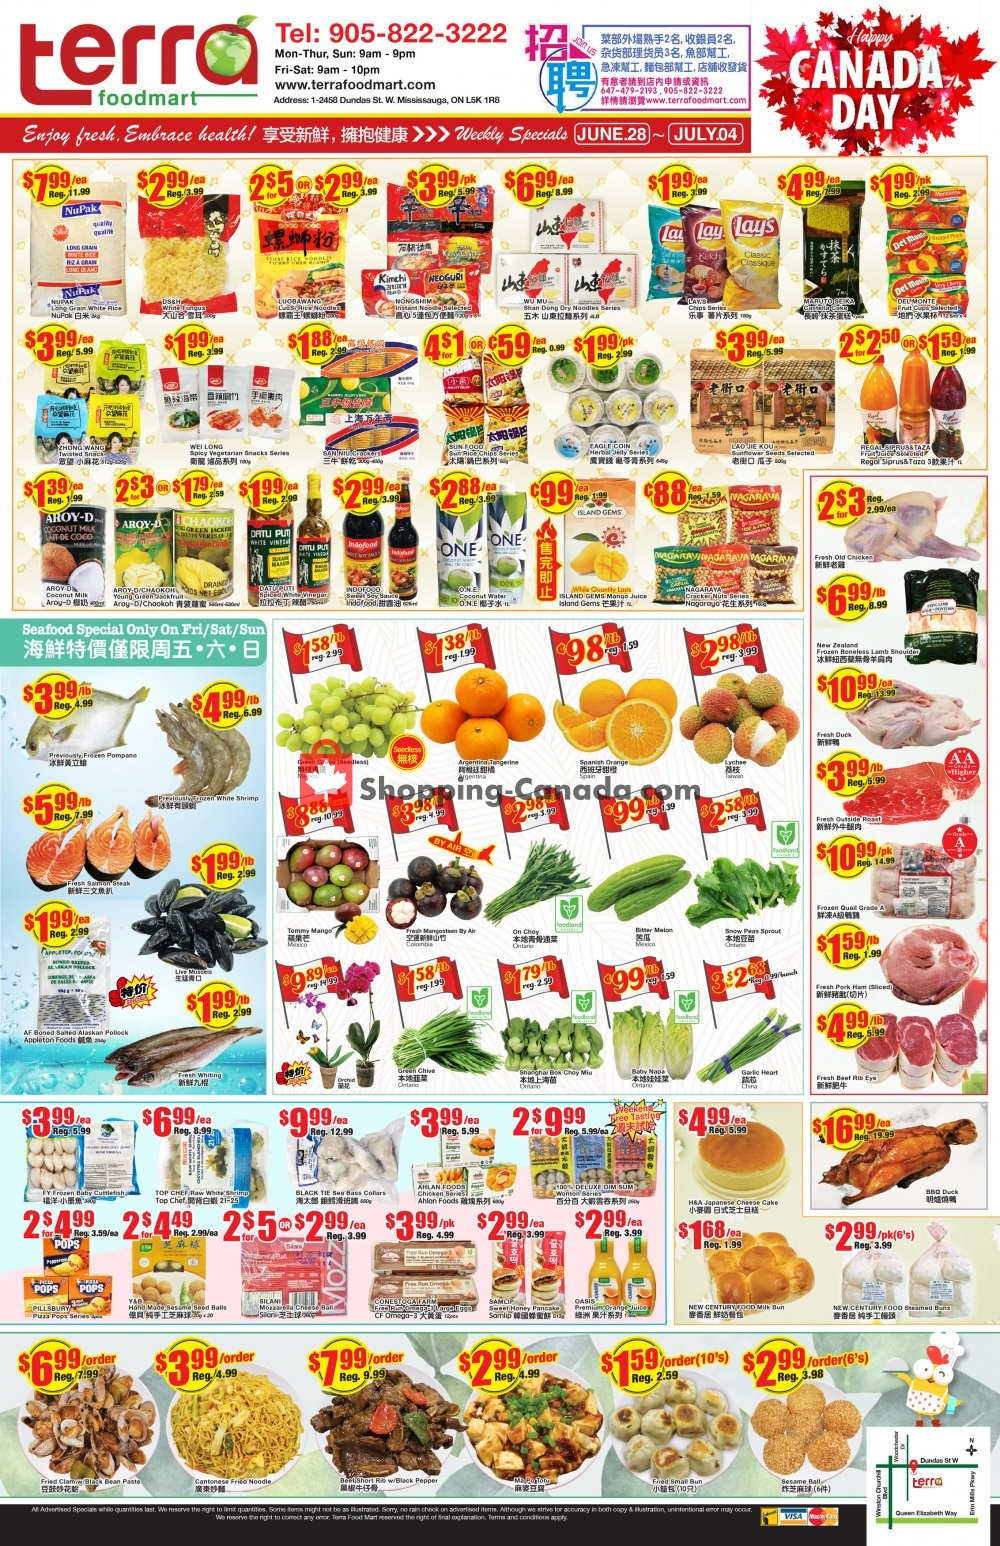 Flyer Terra Foodmart Canada - from Friday June 28, 2019 to Thursday July 4, 2019